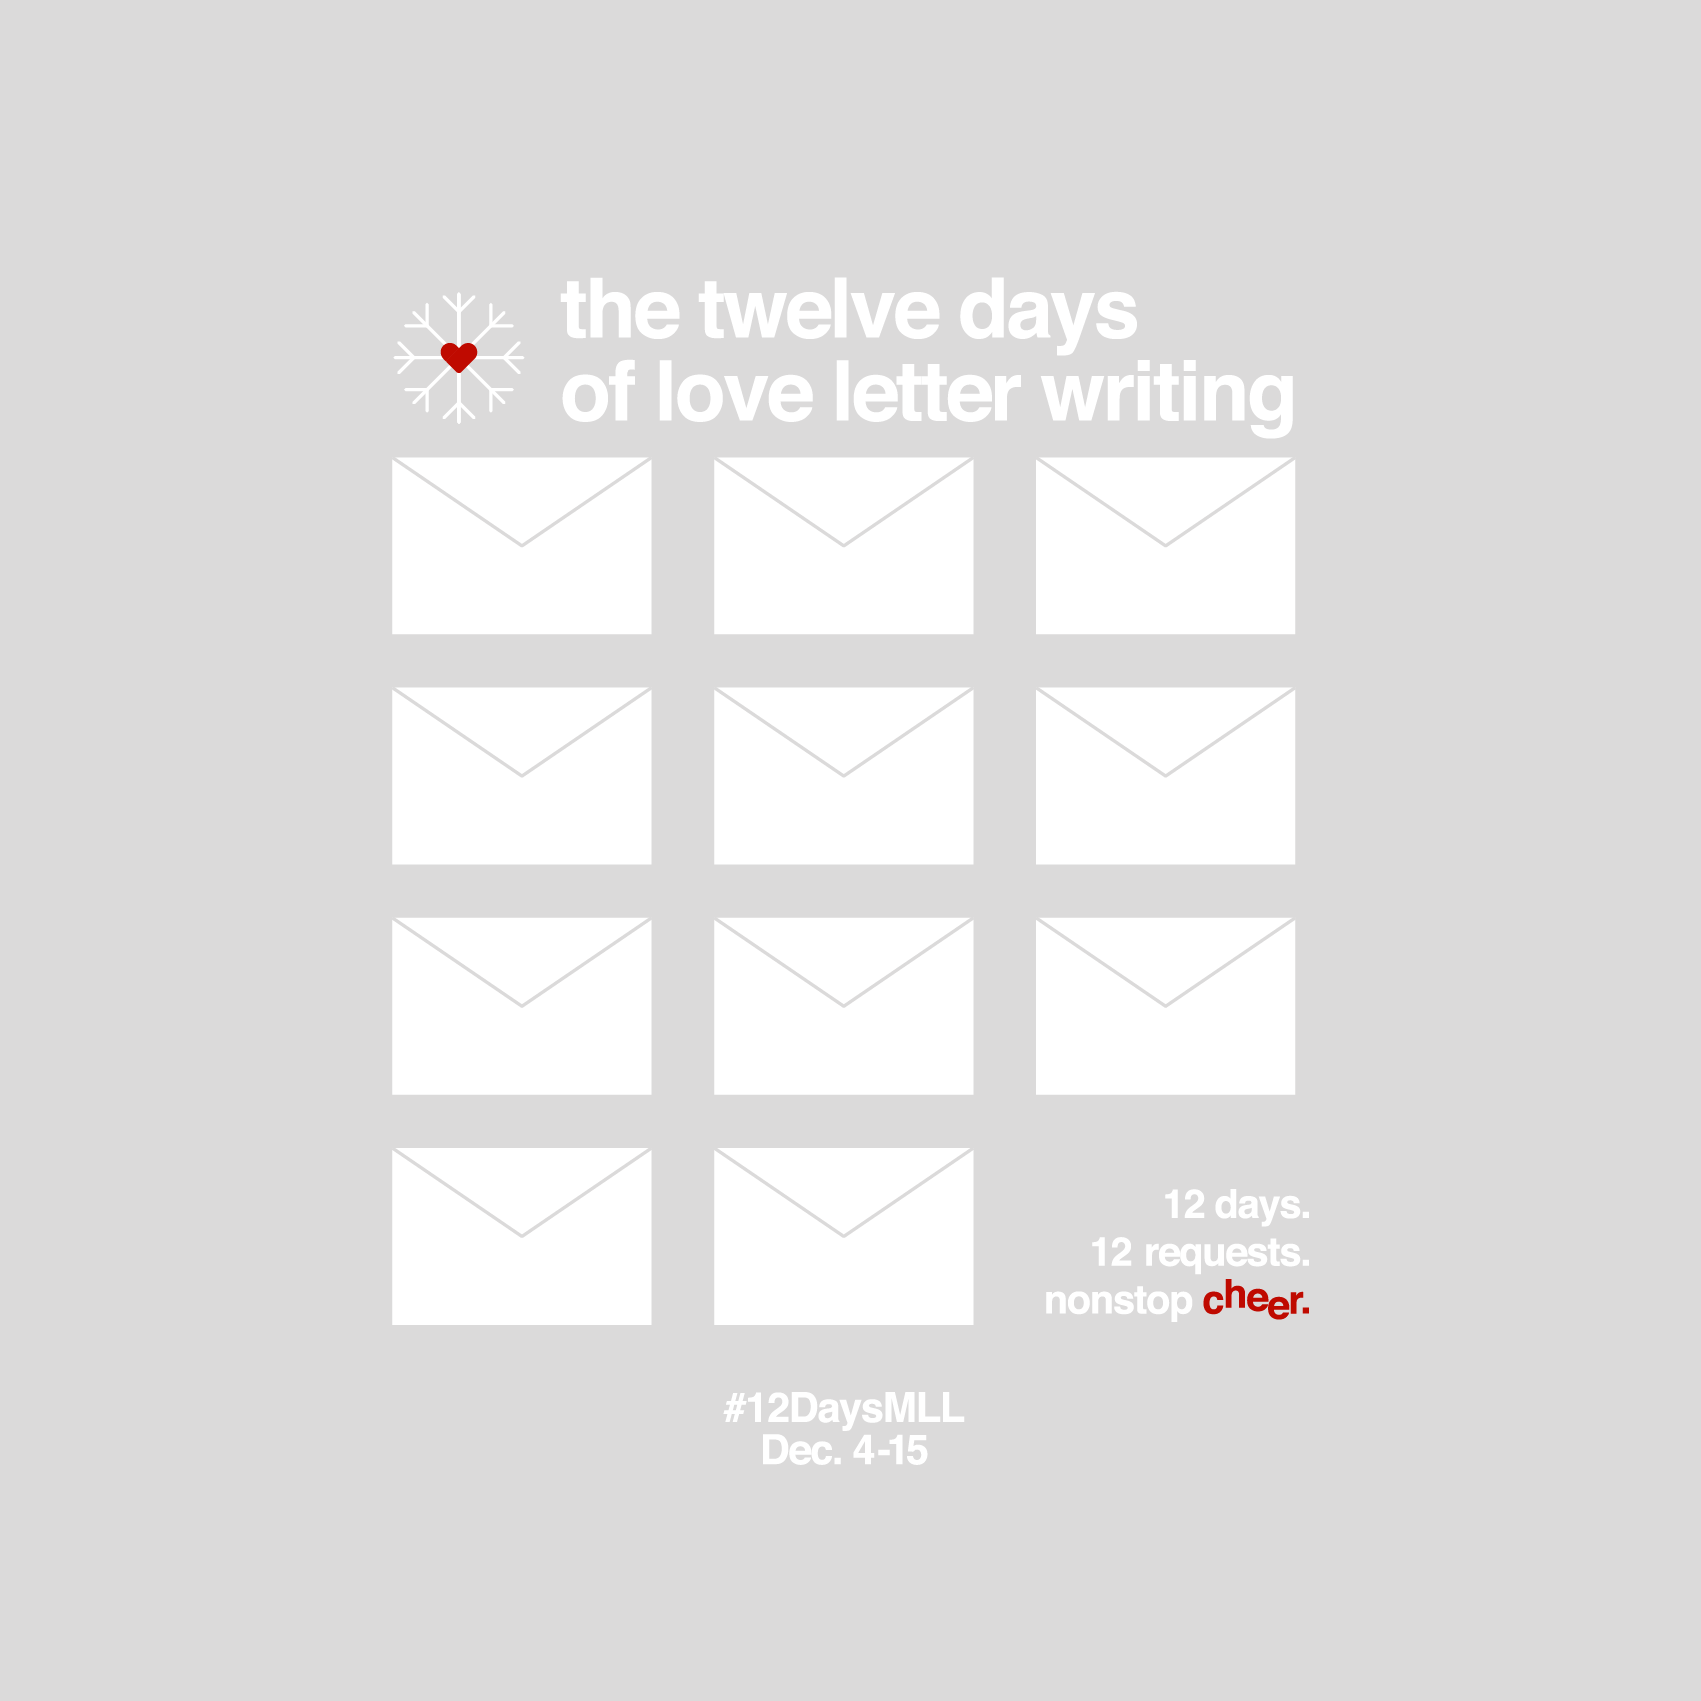 Join in the 12 Days of Love Letters